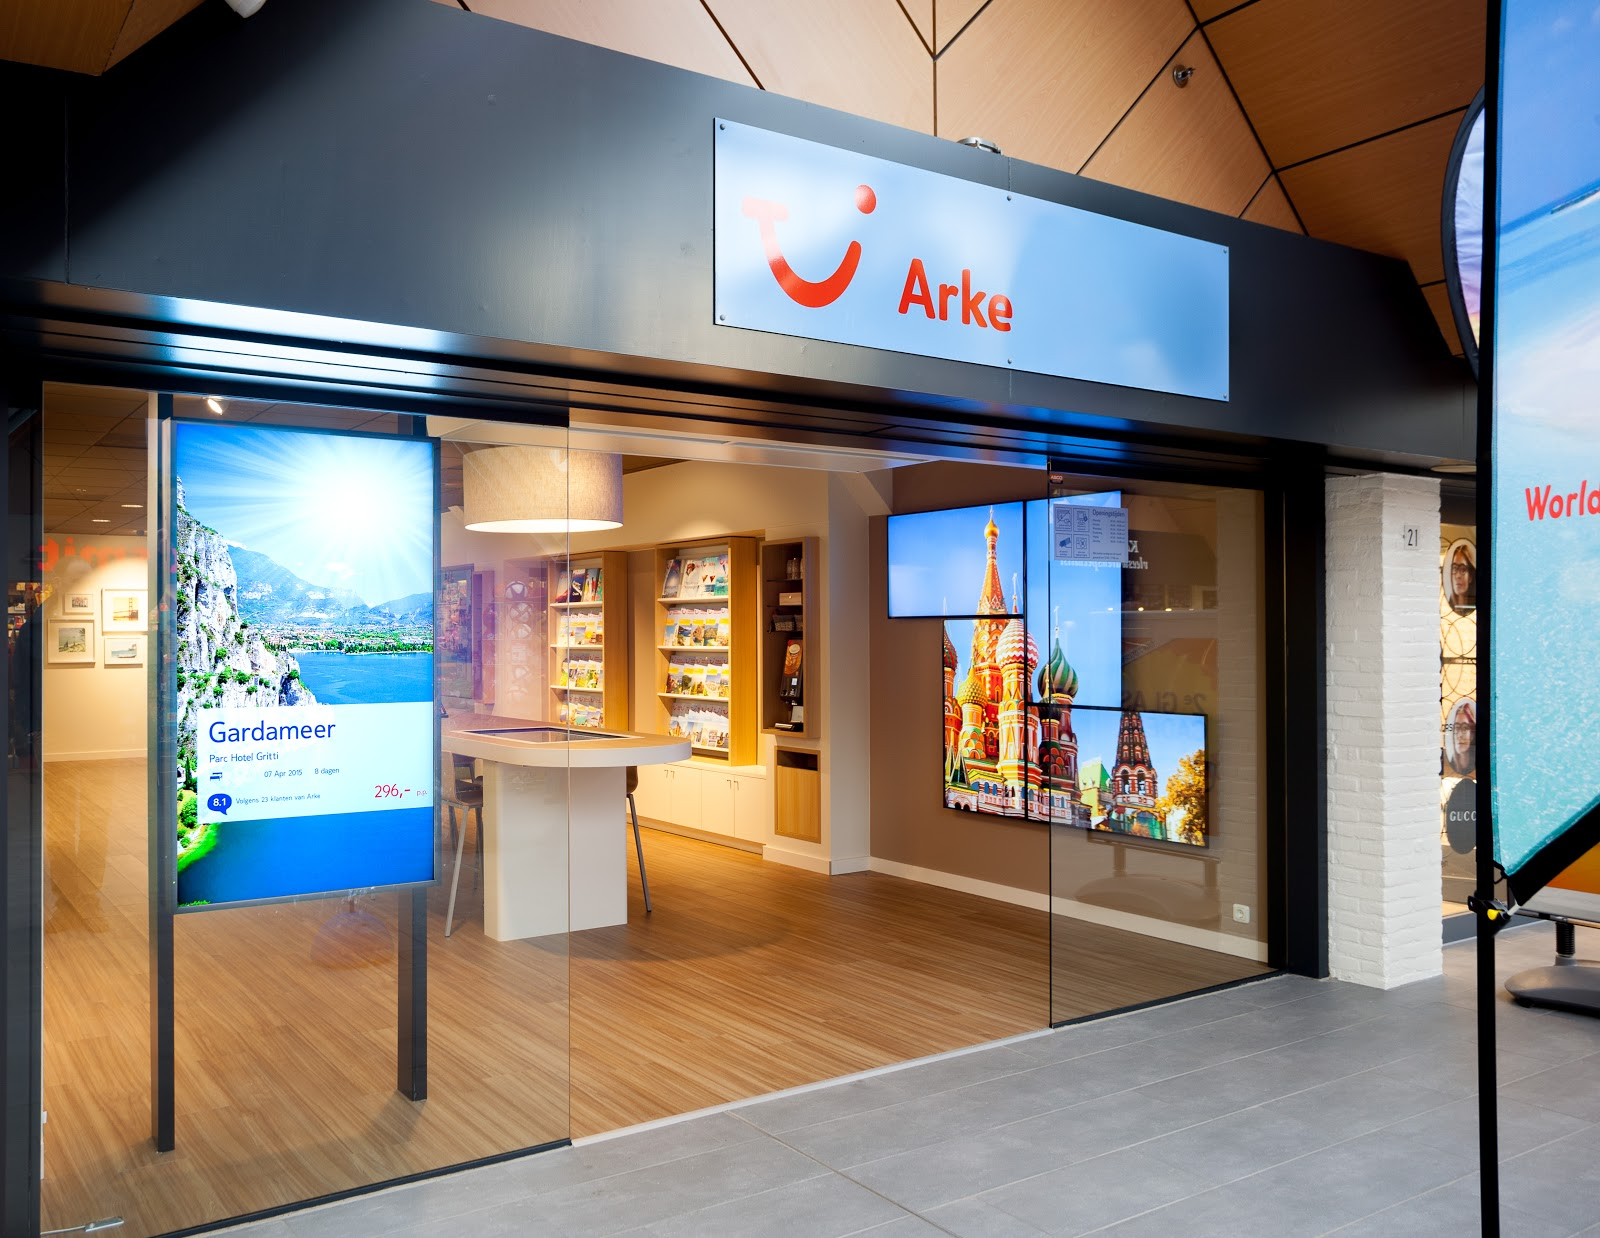 TUI group travel agency using kiosk powered by Intuiface